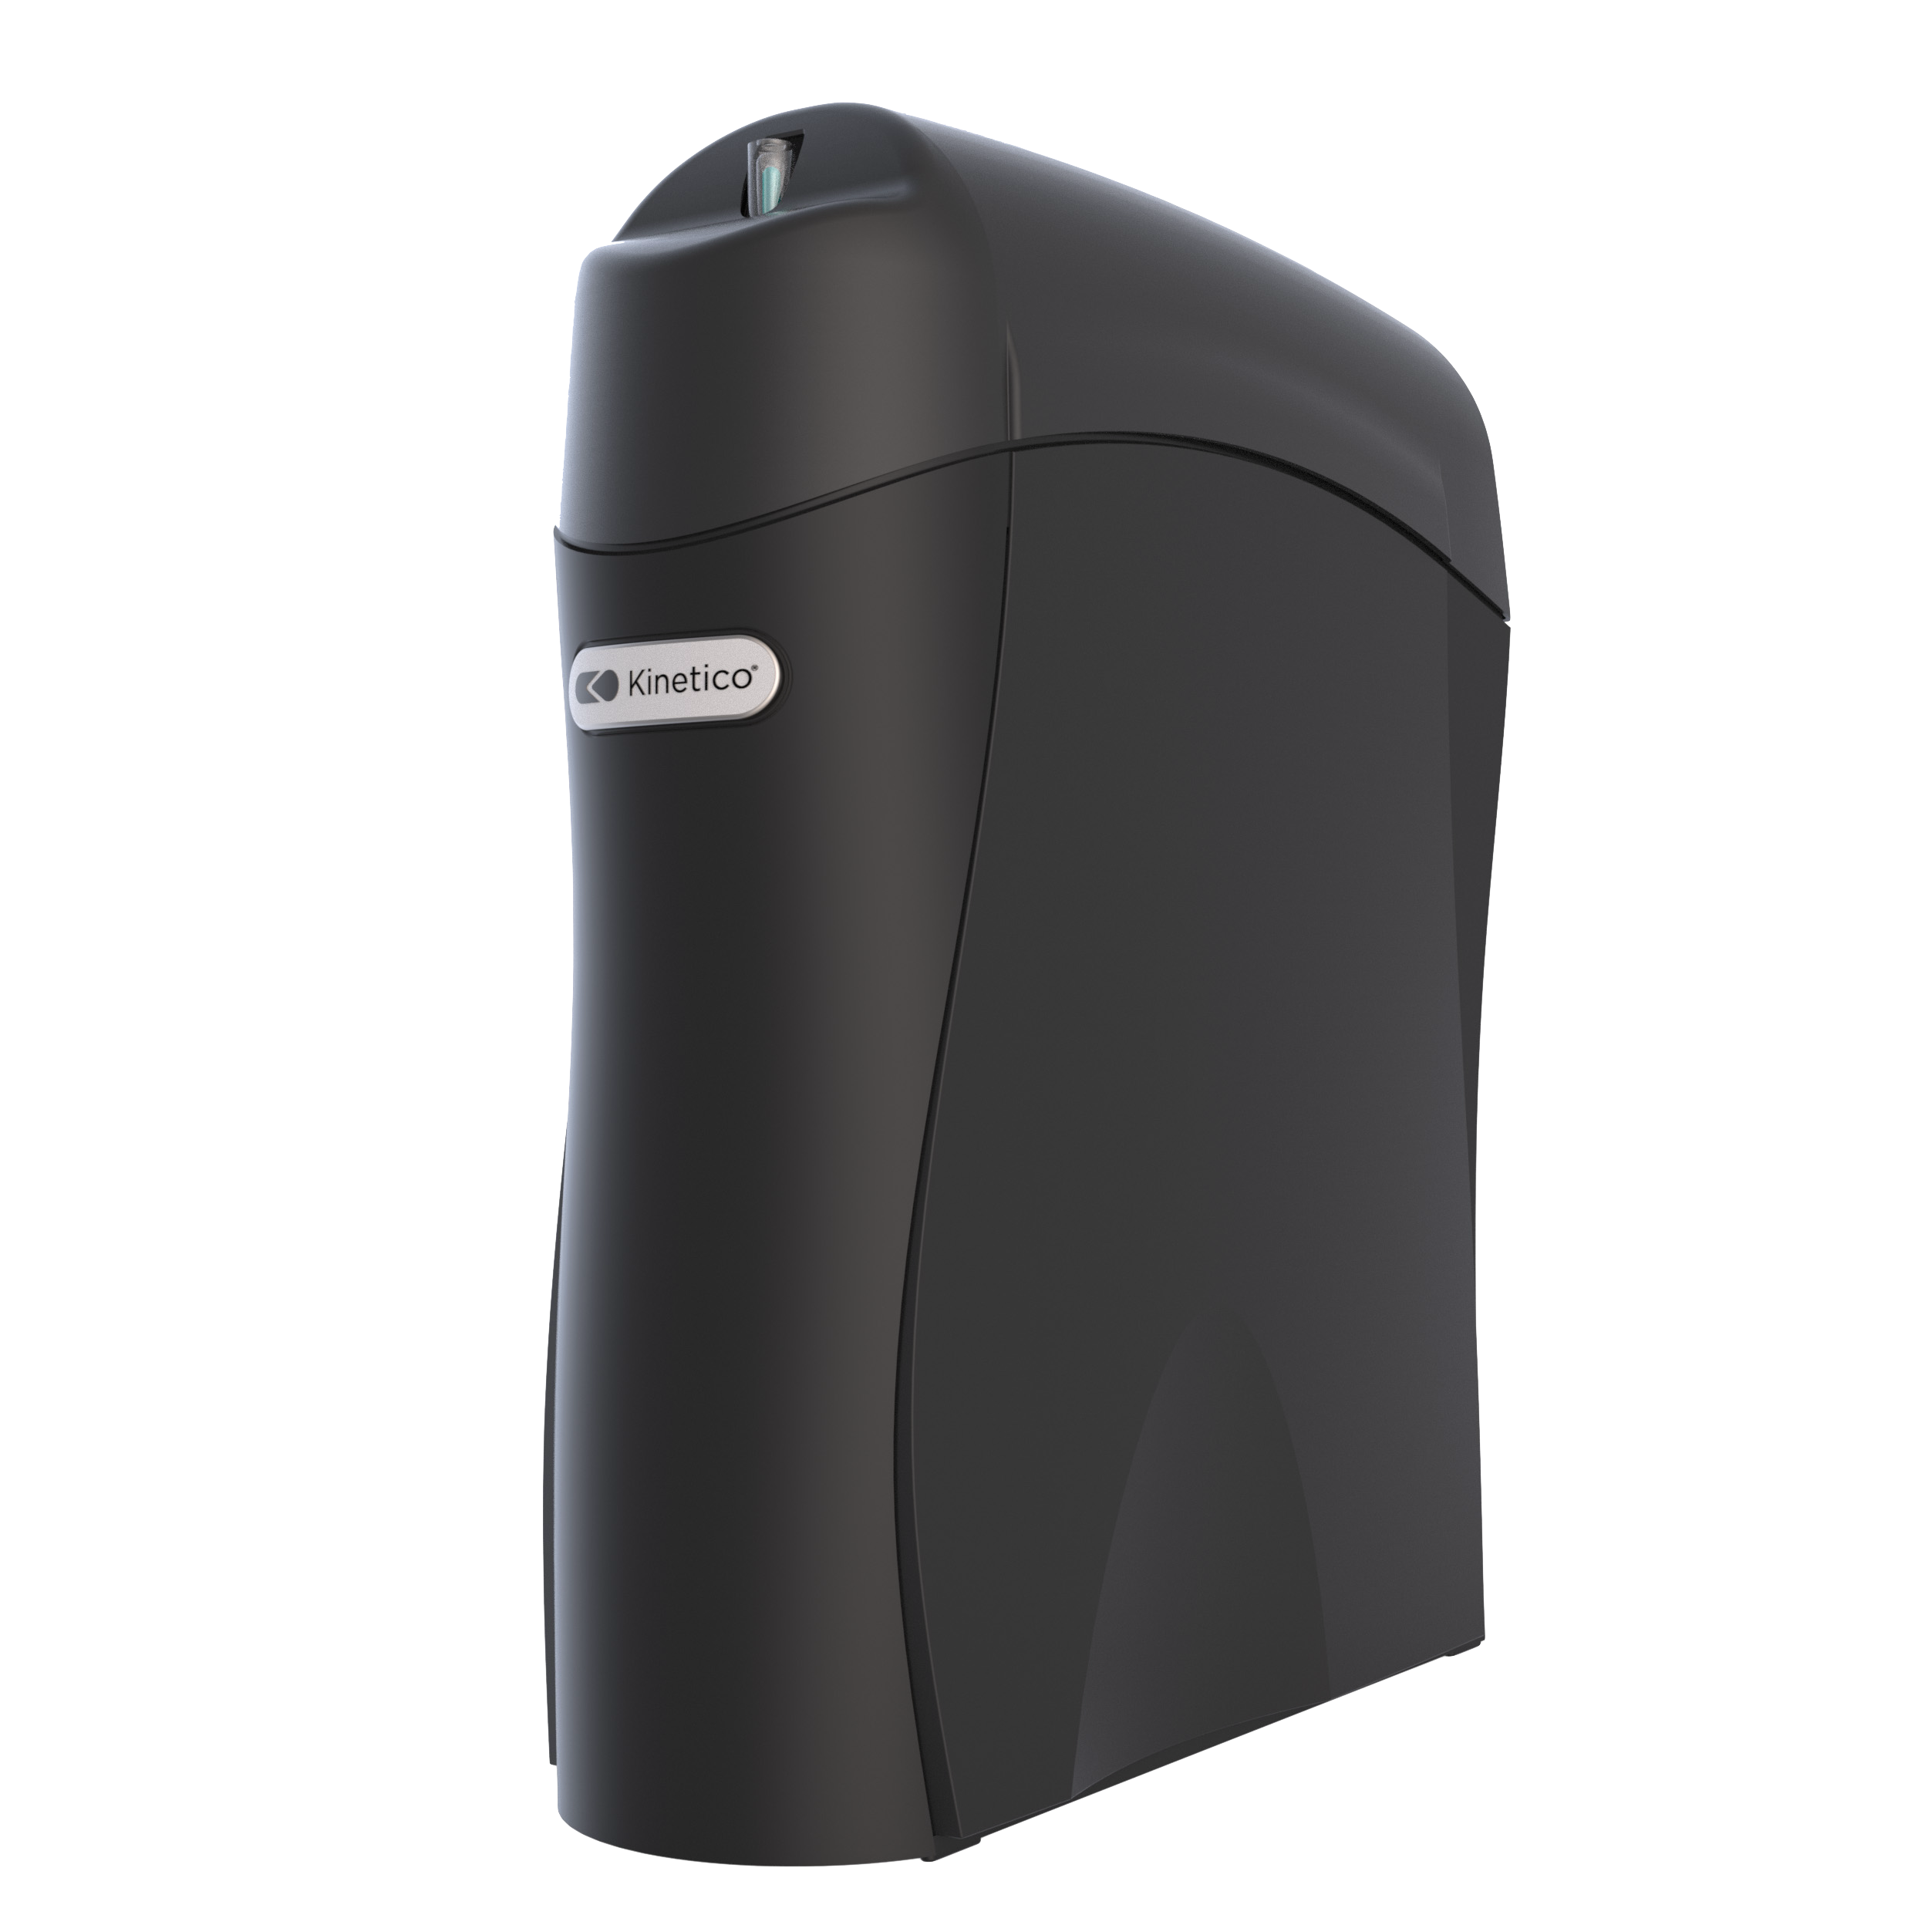 best water purification and filtration systems